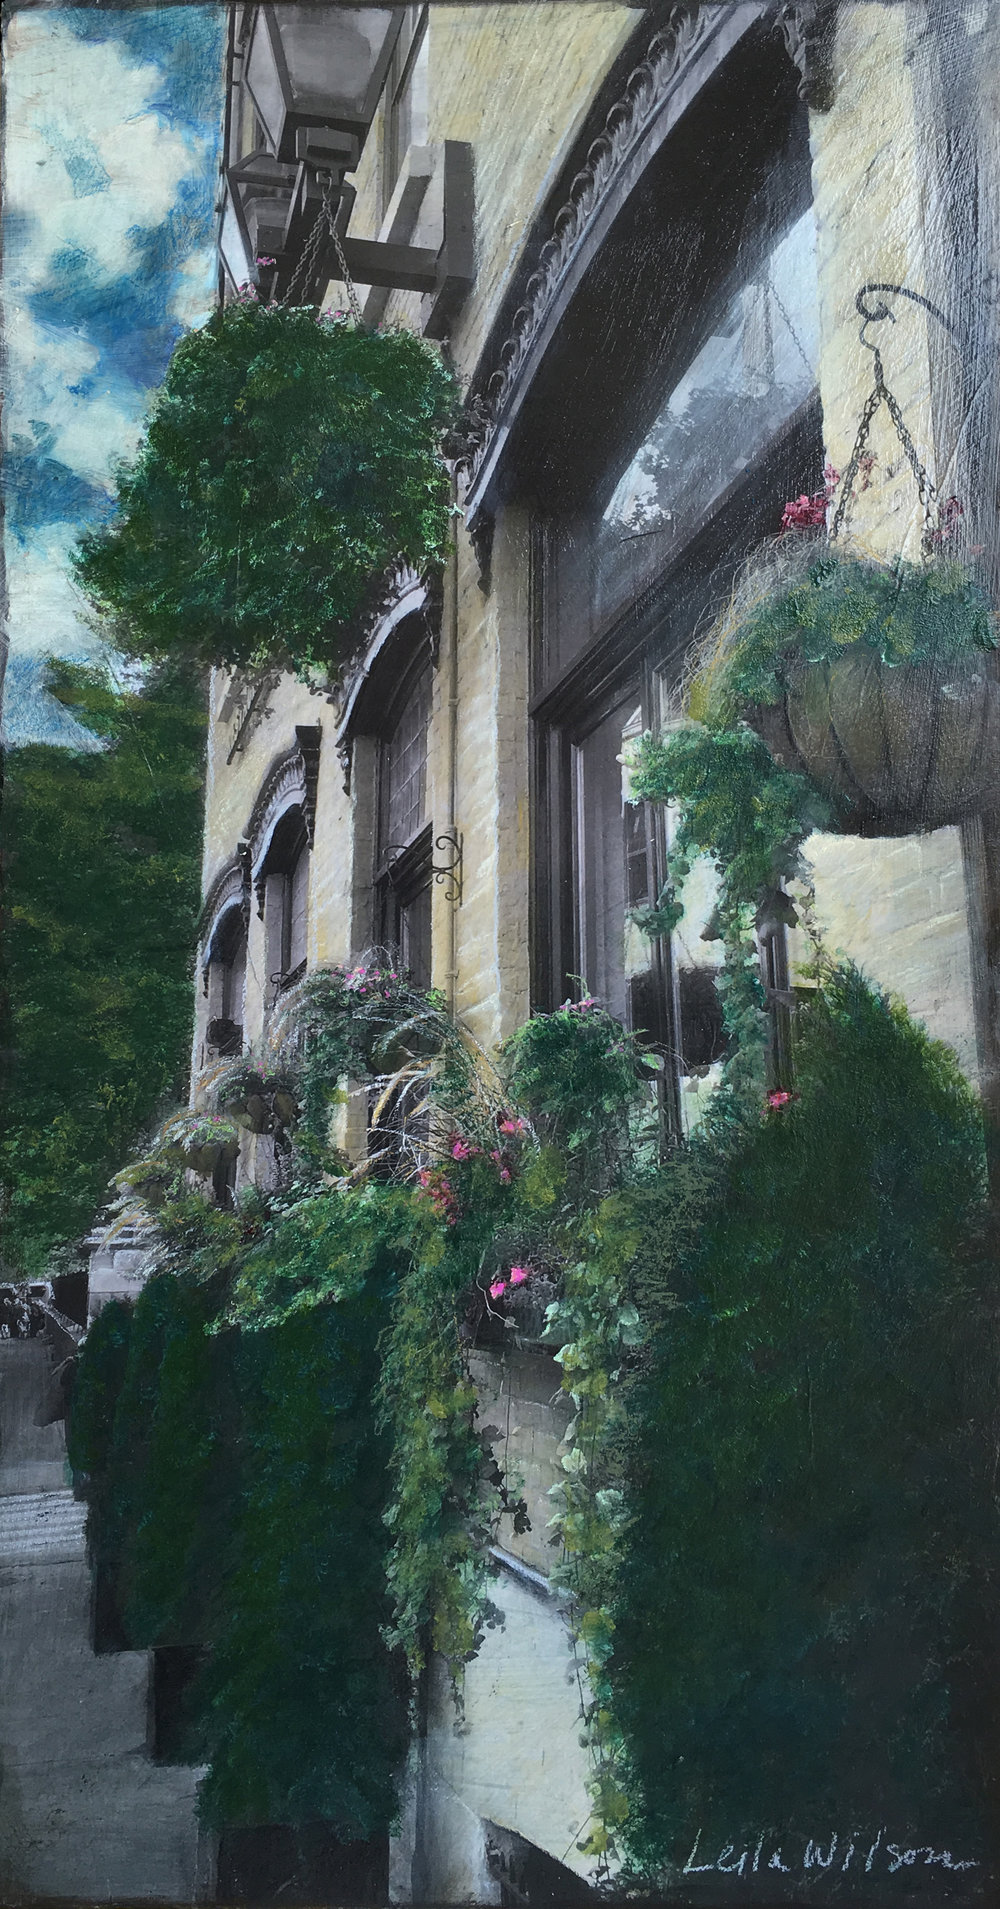 Travel Series: Old Quebec Garden Facade Description: Mixed Media Original Painting on Wood Panel, Custom Reclaimed Wood Frame (24x48) Price: $750. — SOLD —